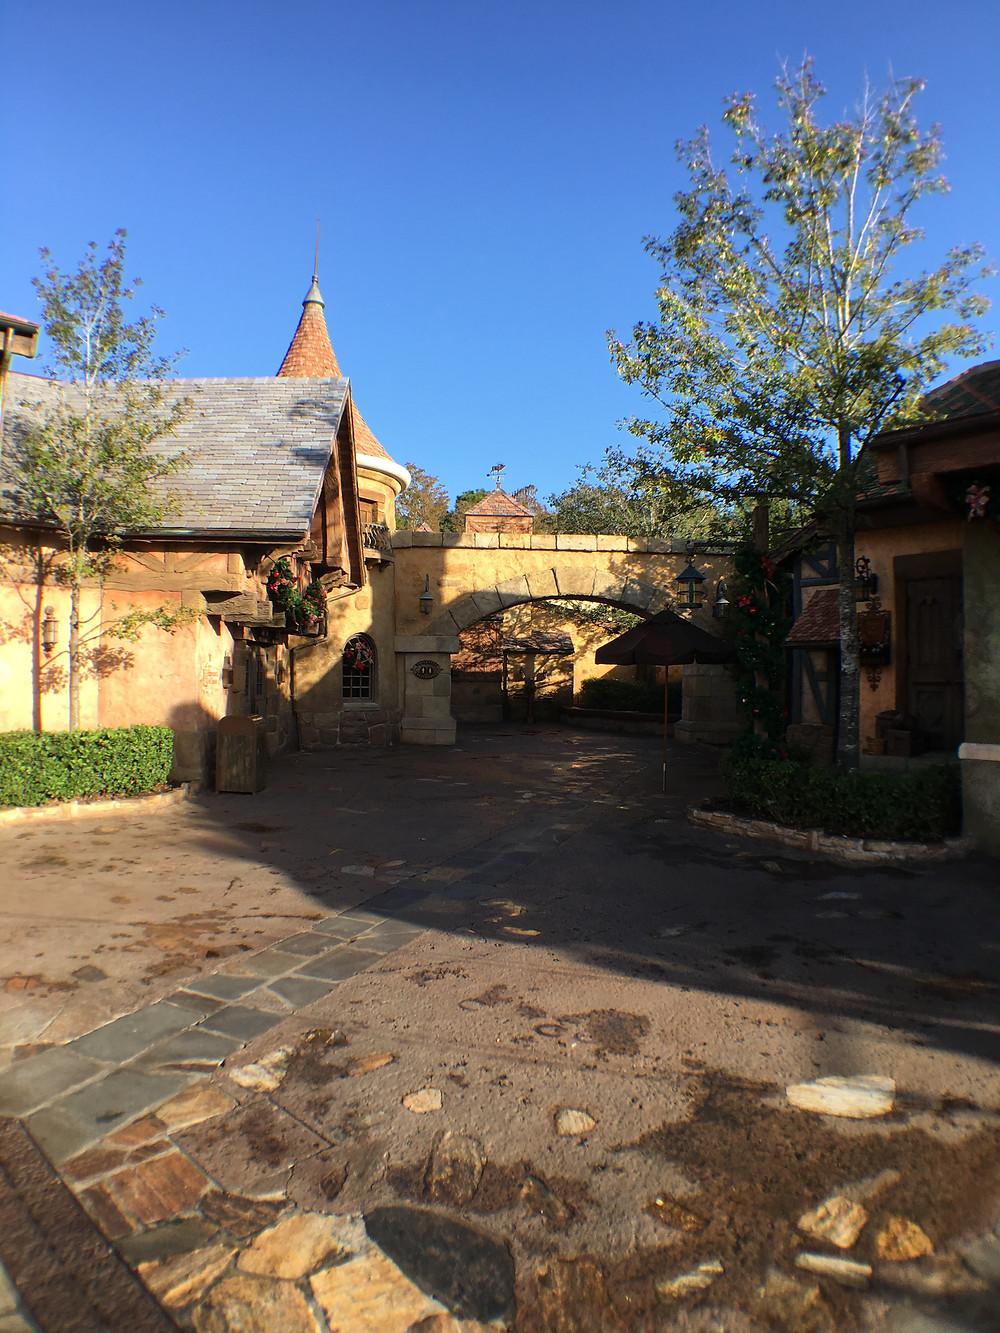 Looking towards the Gaston's Tavern Loo from the Fountain Courtyard